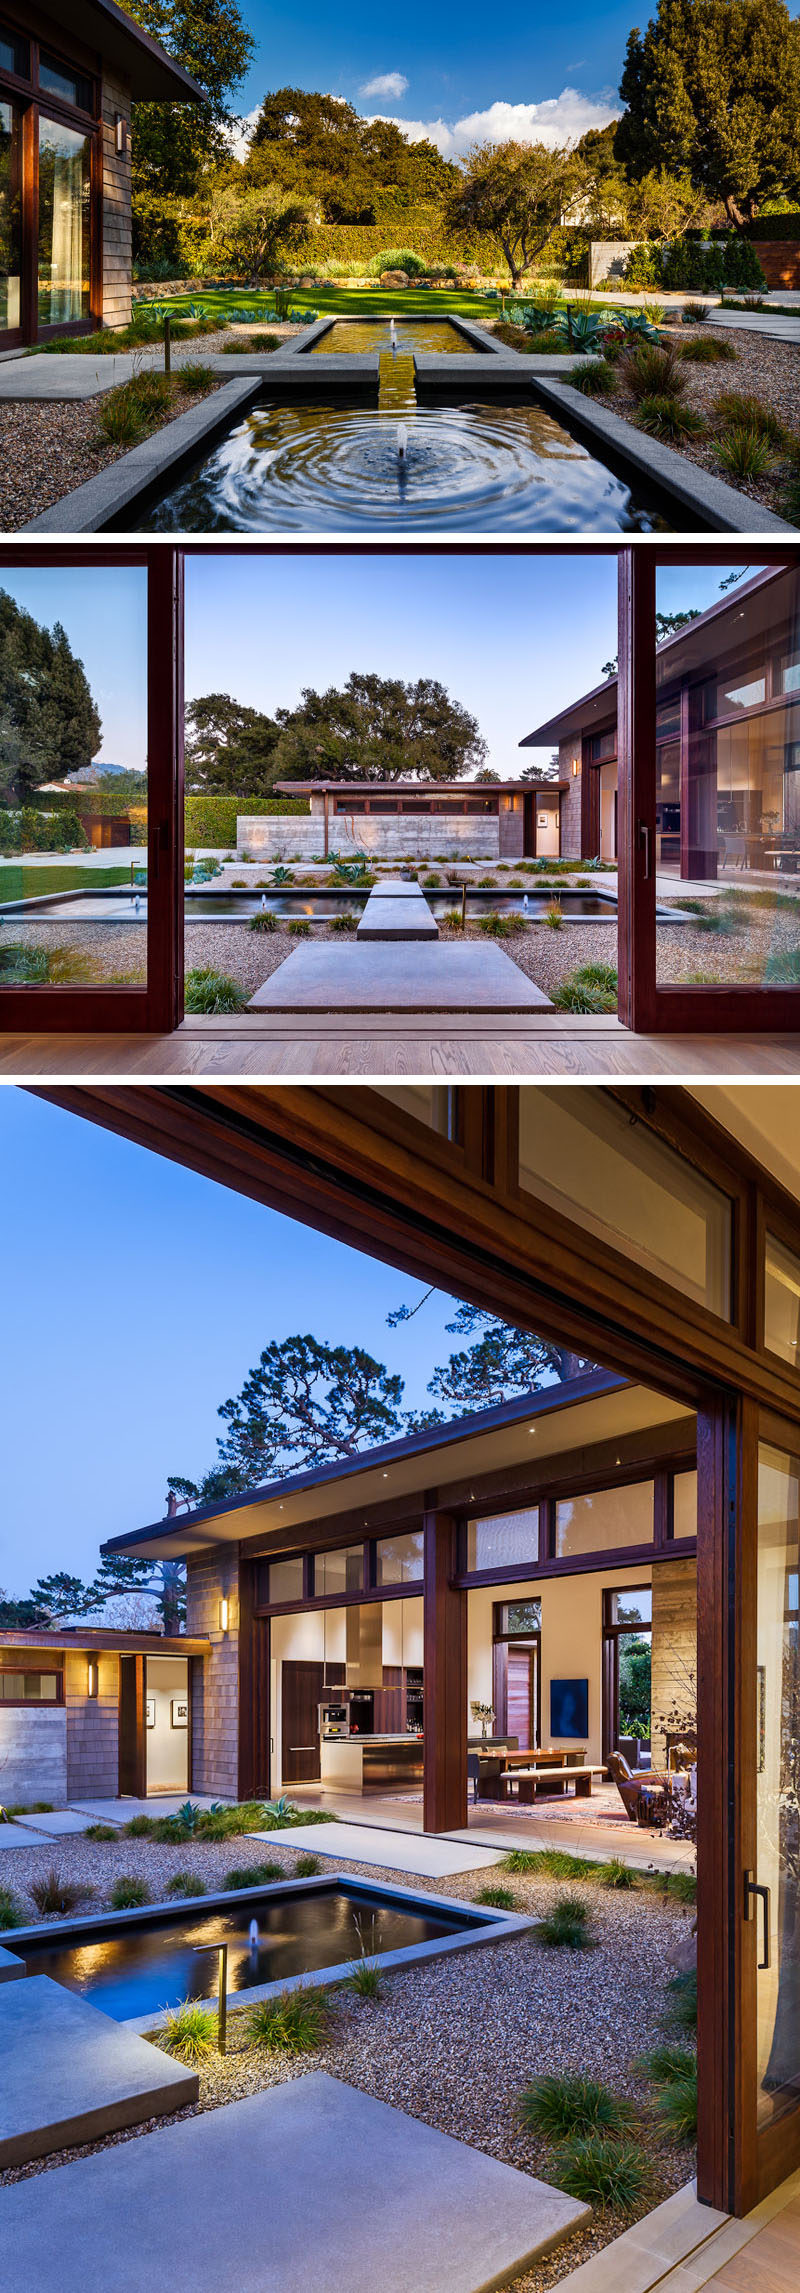 This modern house has a landscaped front courtyard with a water feature and a rock garden to create a contemporary garden, while a path runs along the side of the garage and leads to the pivoting front door. #LandscapeDesign #Landscaping #Garden #WaterFeature